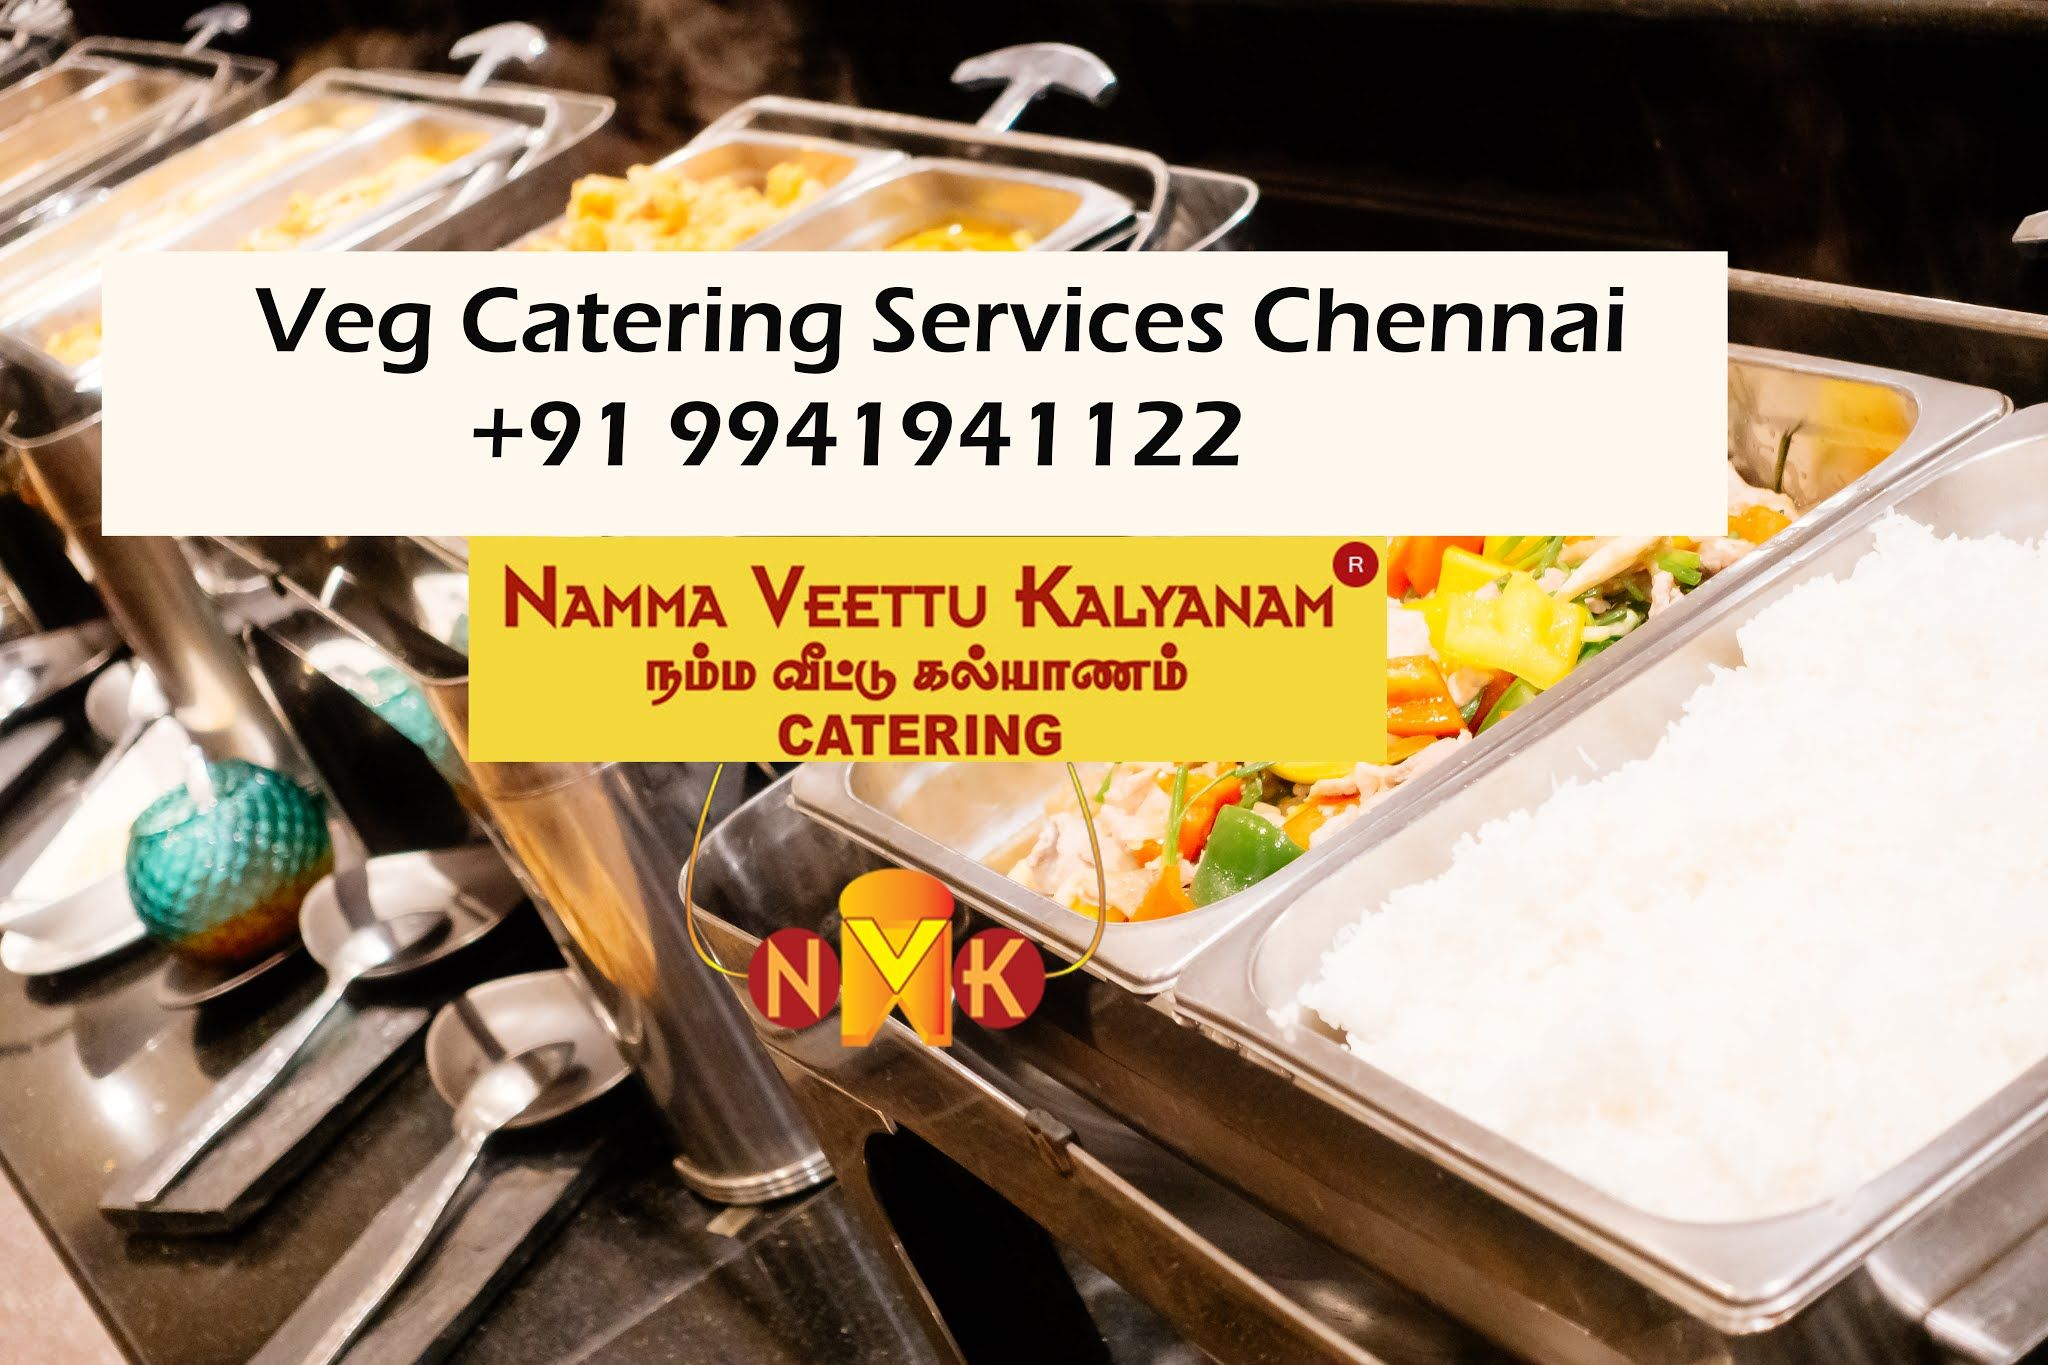 Nammaveettukalyanamcatering Healthy Hygienic Personalized Menus To Address Food Fatigue Delicious Experience Awaits We Ha Food Catering Services Catering